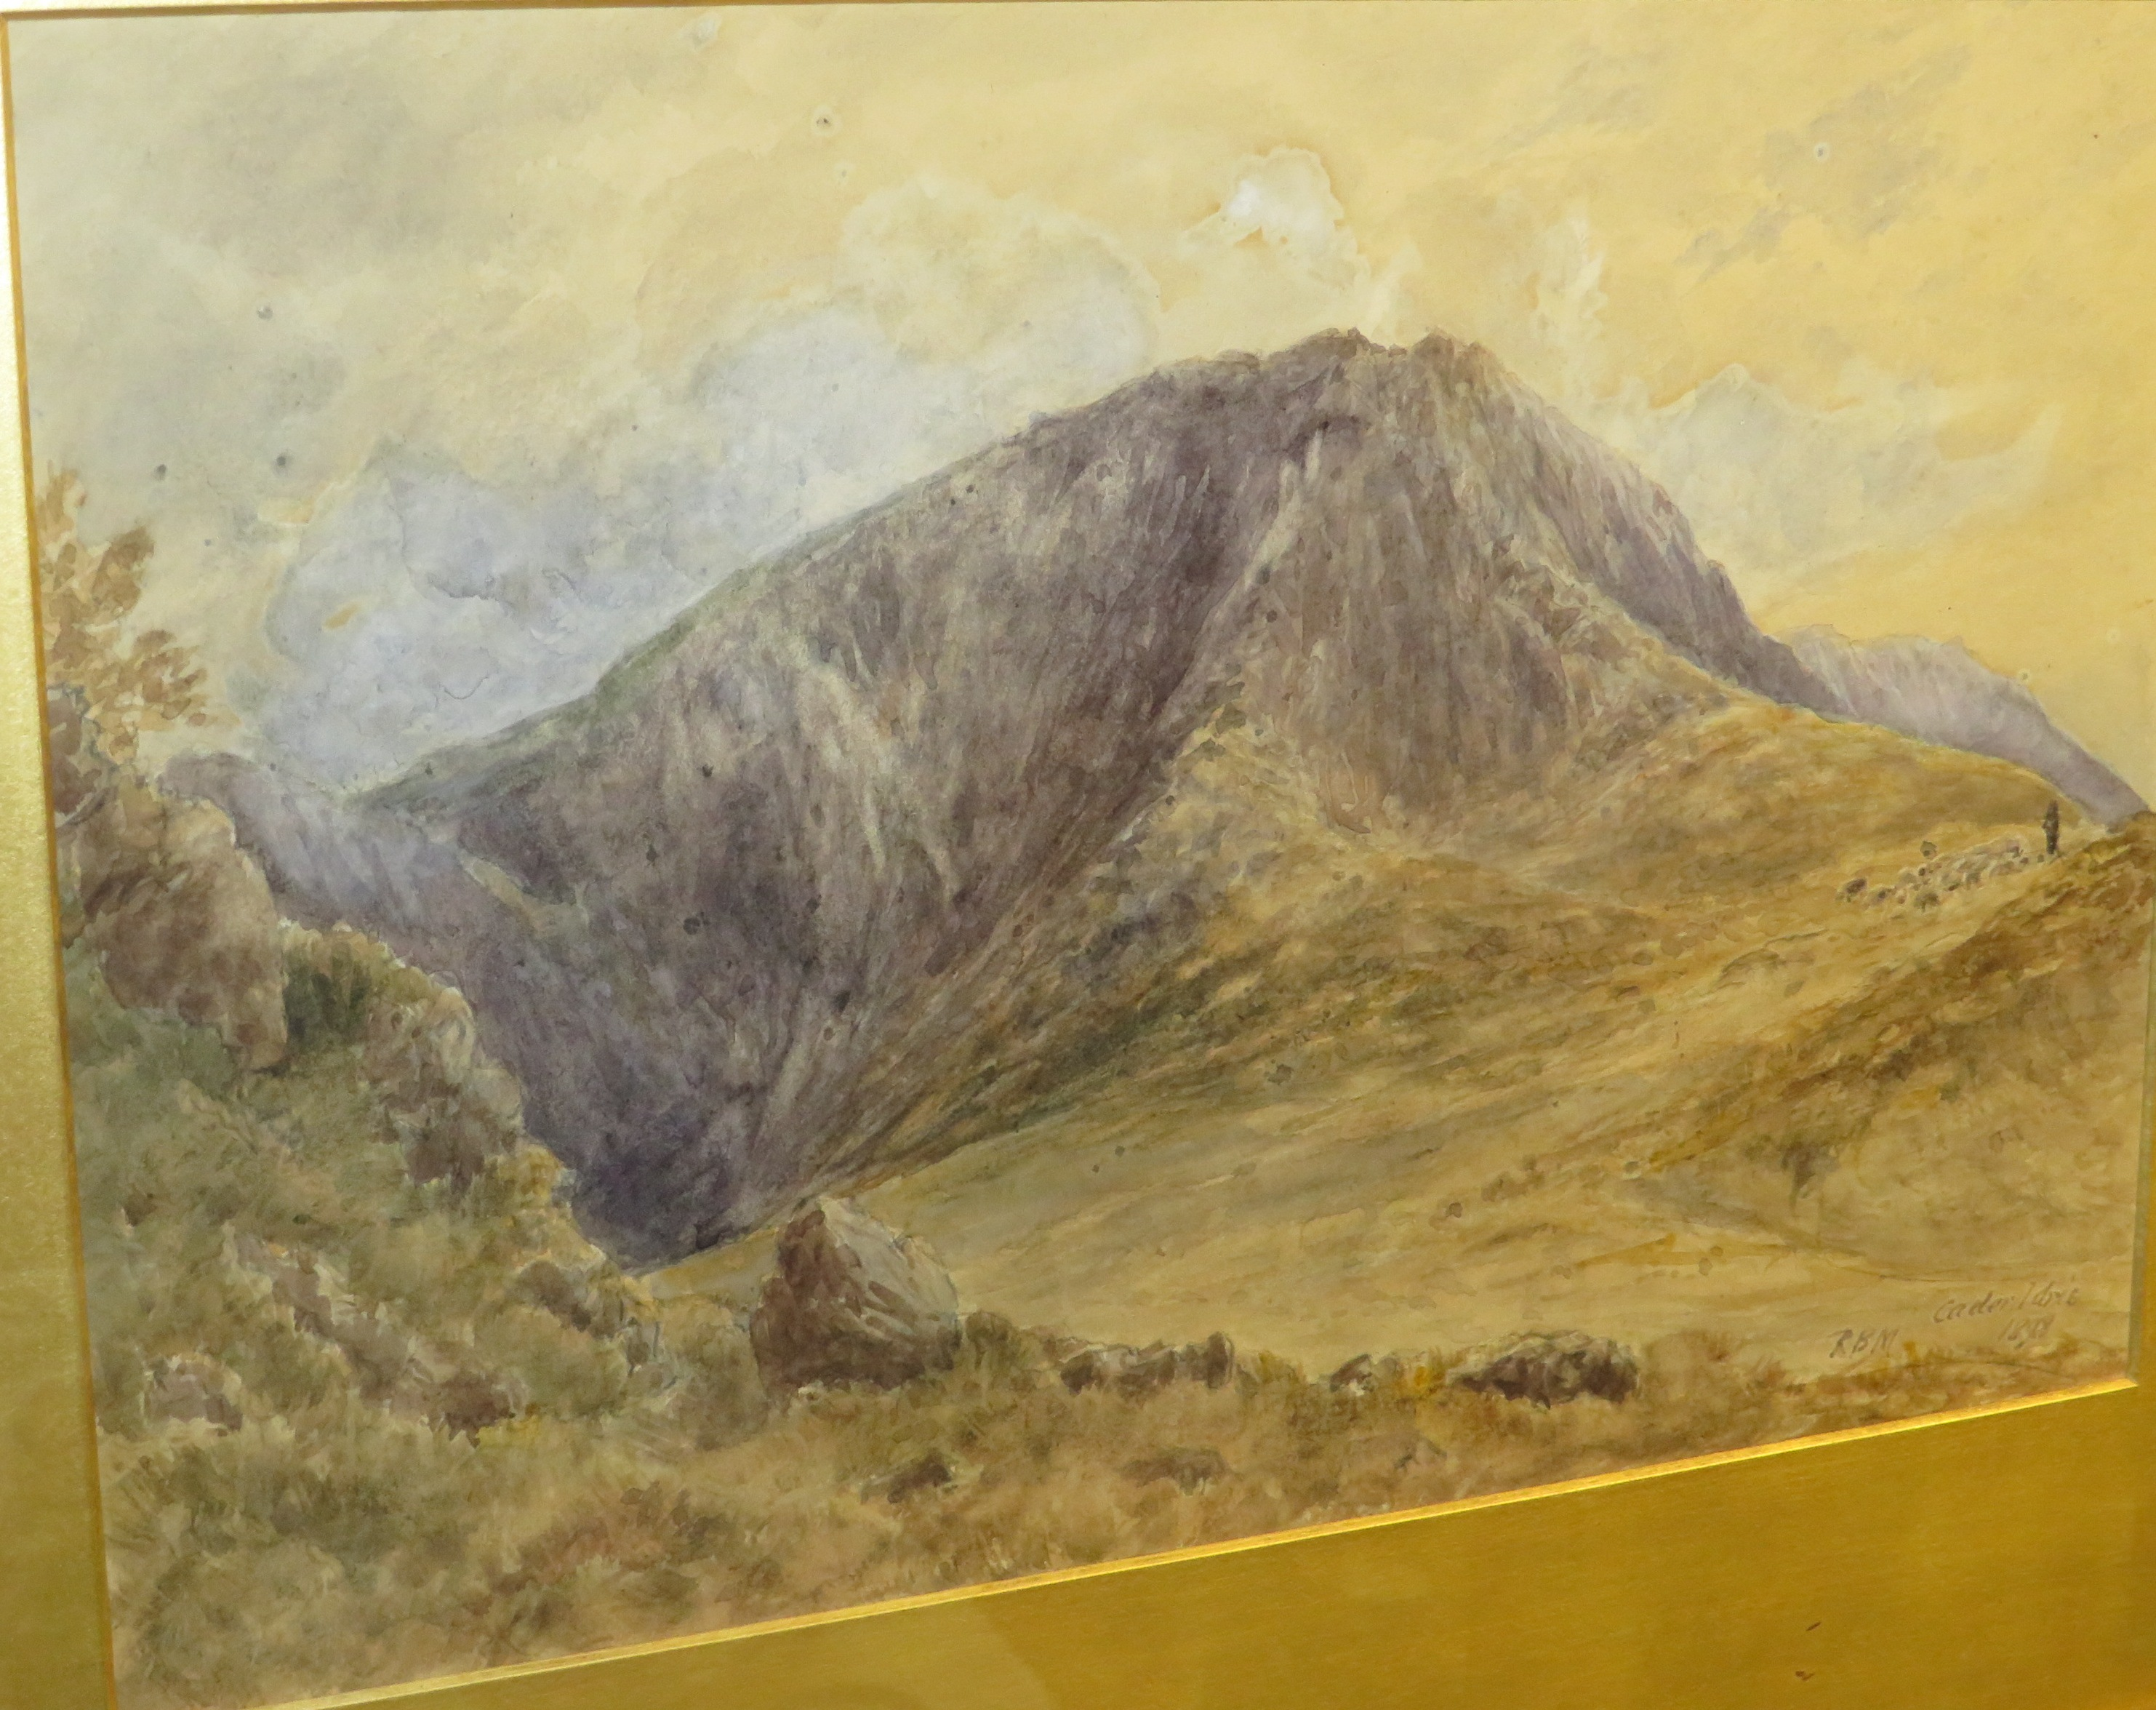 Lot 25 - Cader Idris, watercolour, titled lower right, initialled RBM and dated 1898, (23cm x 34cm), F&G